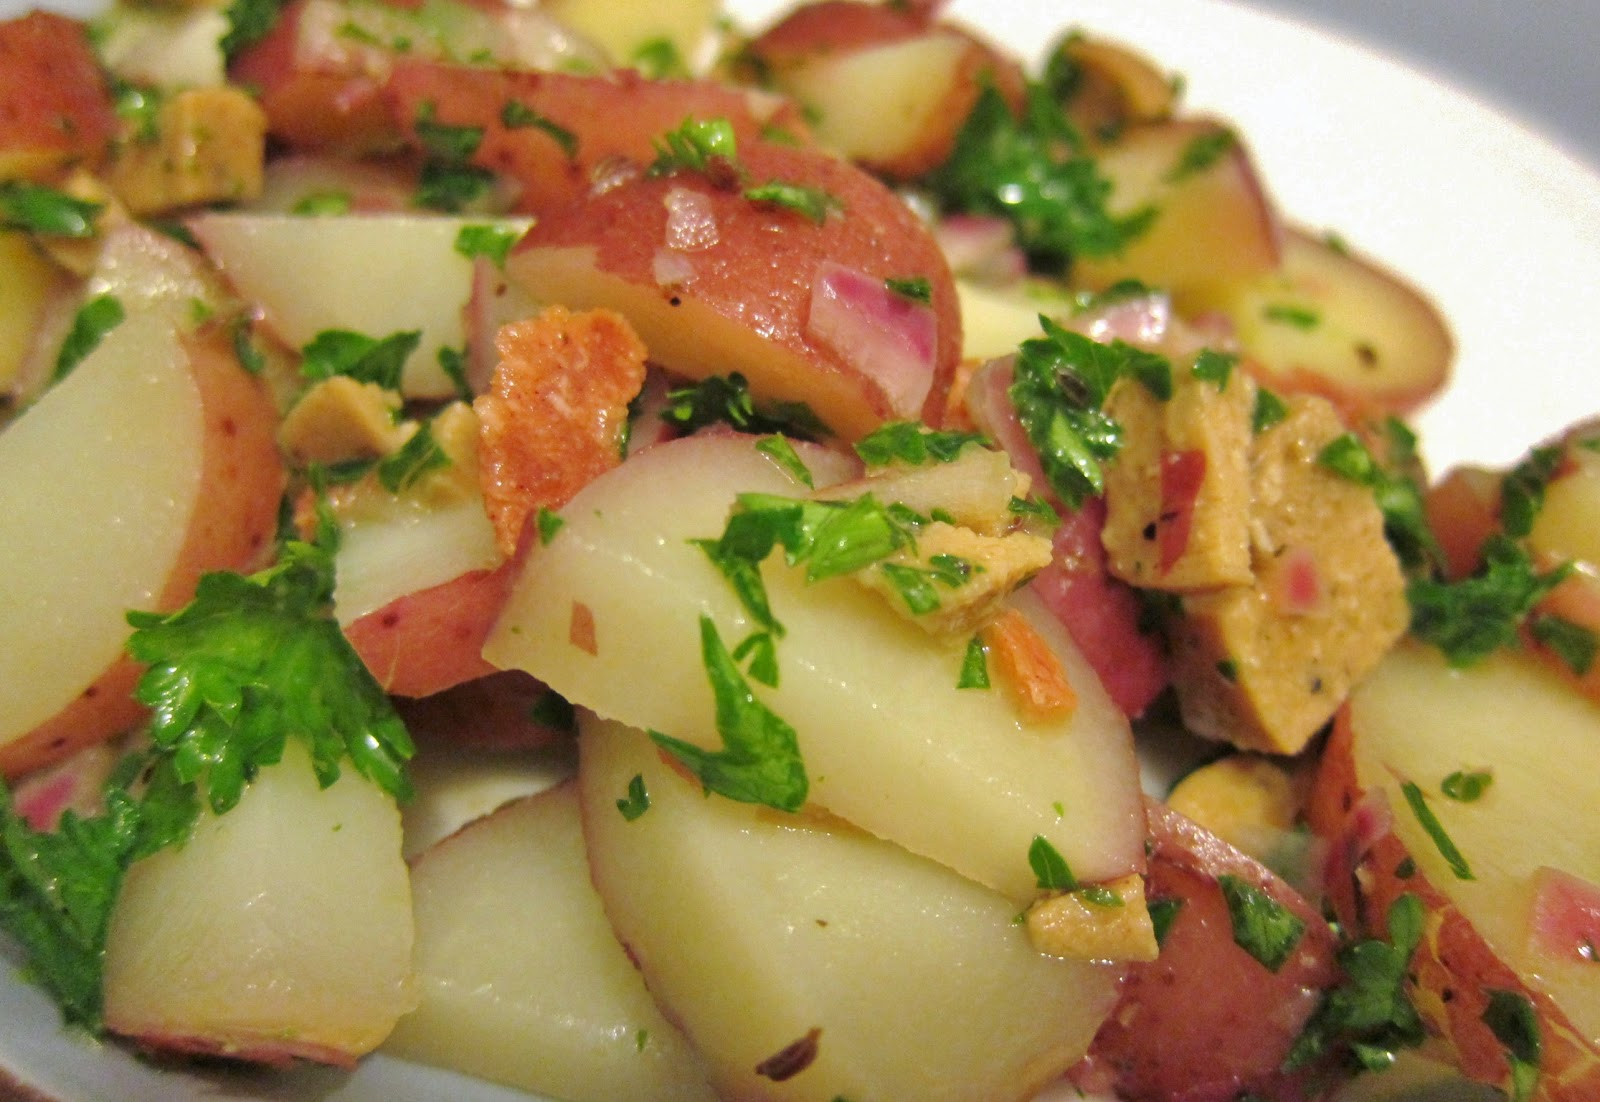 The Vegan Chronicle: Hot German Potato Salad